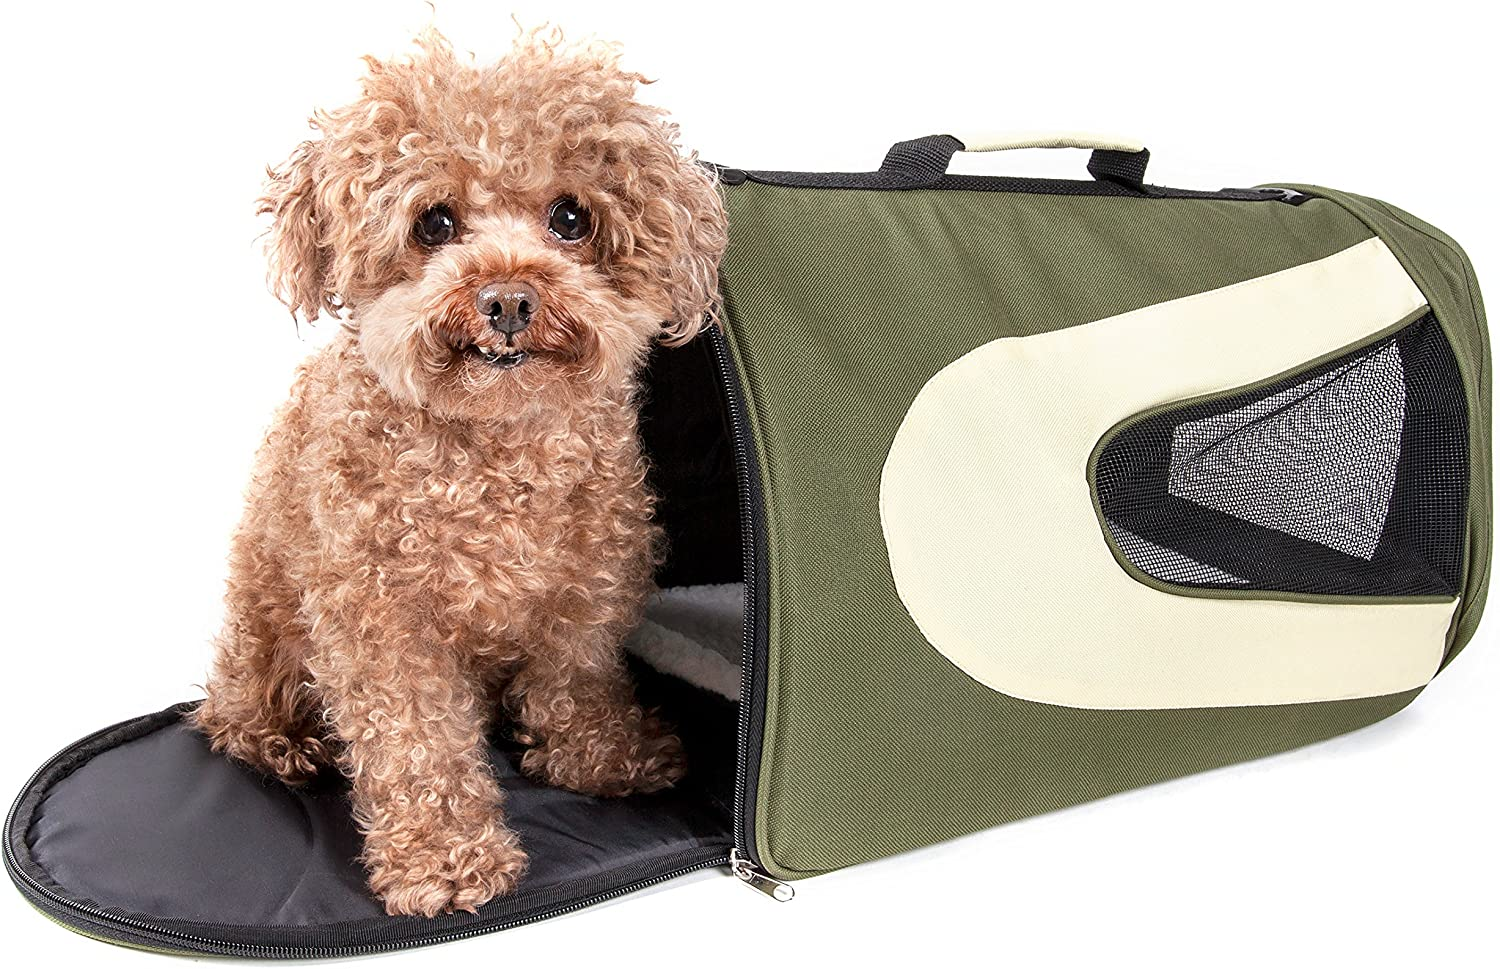 PET LIFE Airline Approved Collapsible Zippered Folding Sporty Mesh Travel Fashion Pet Dog Carrier Crate, Large, Green & Khaki : Pet Supplies